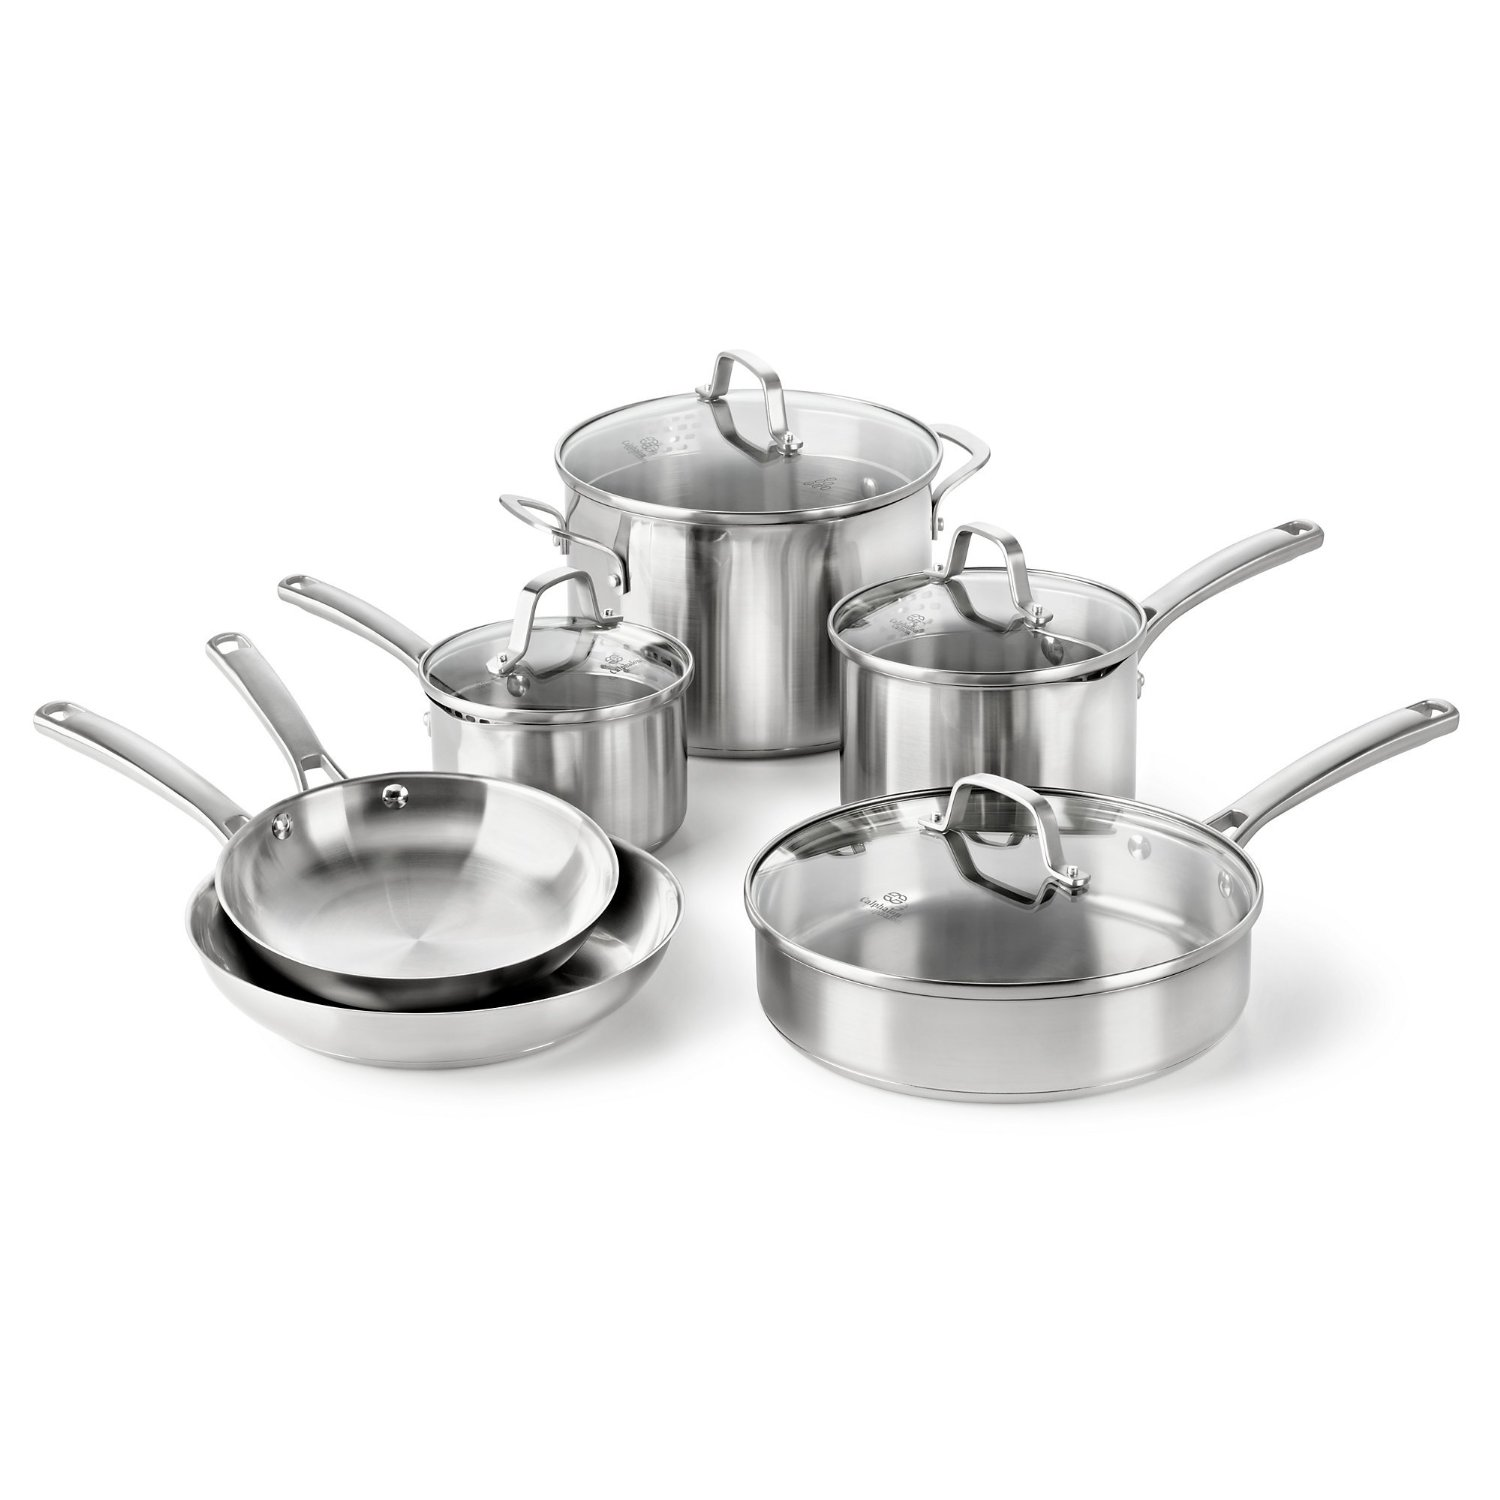 Our favorite cookware set